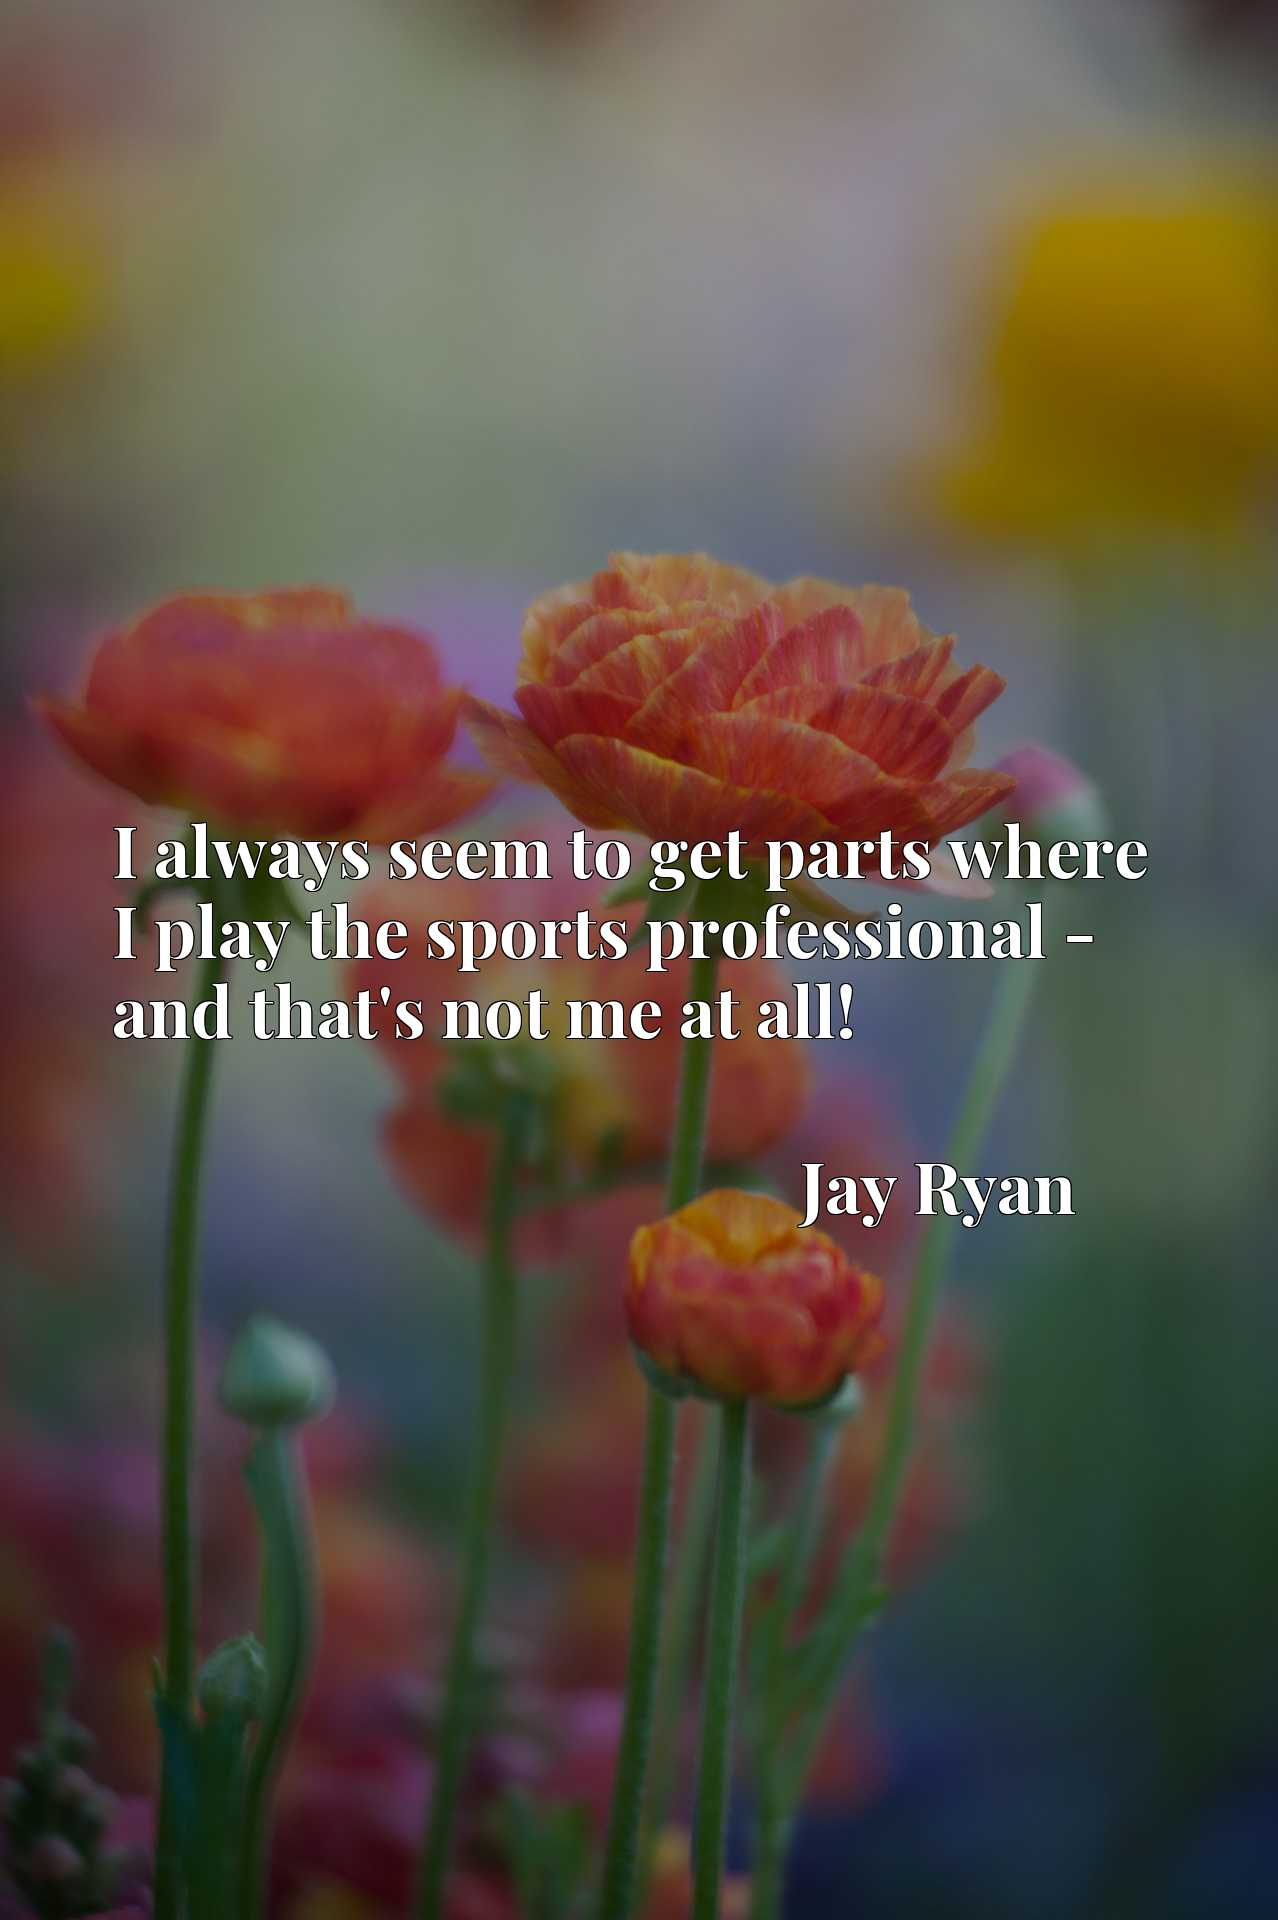 Quote Picture :I always seem to get parts where I play the sports professional - and that's not me at all!